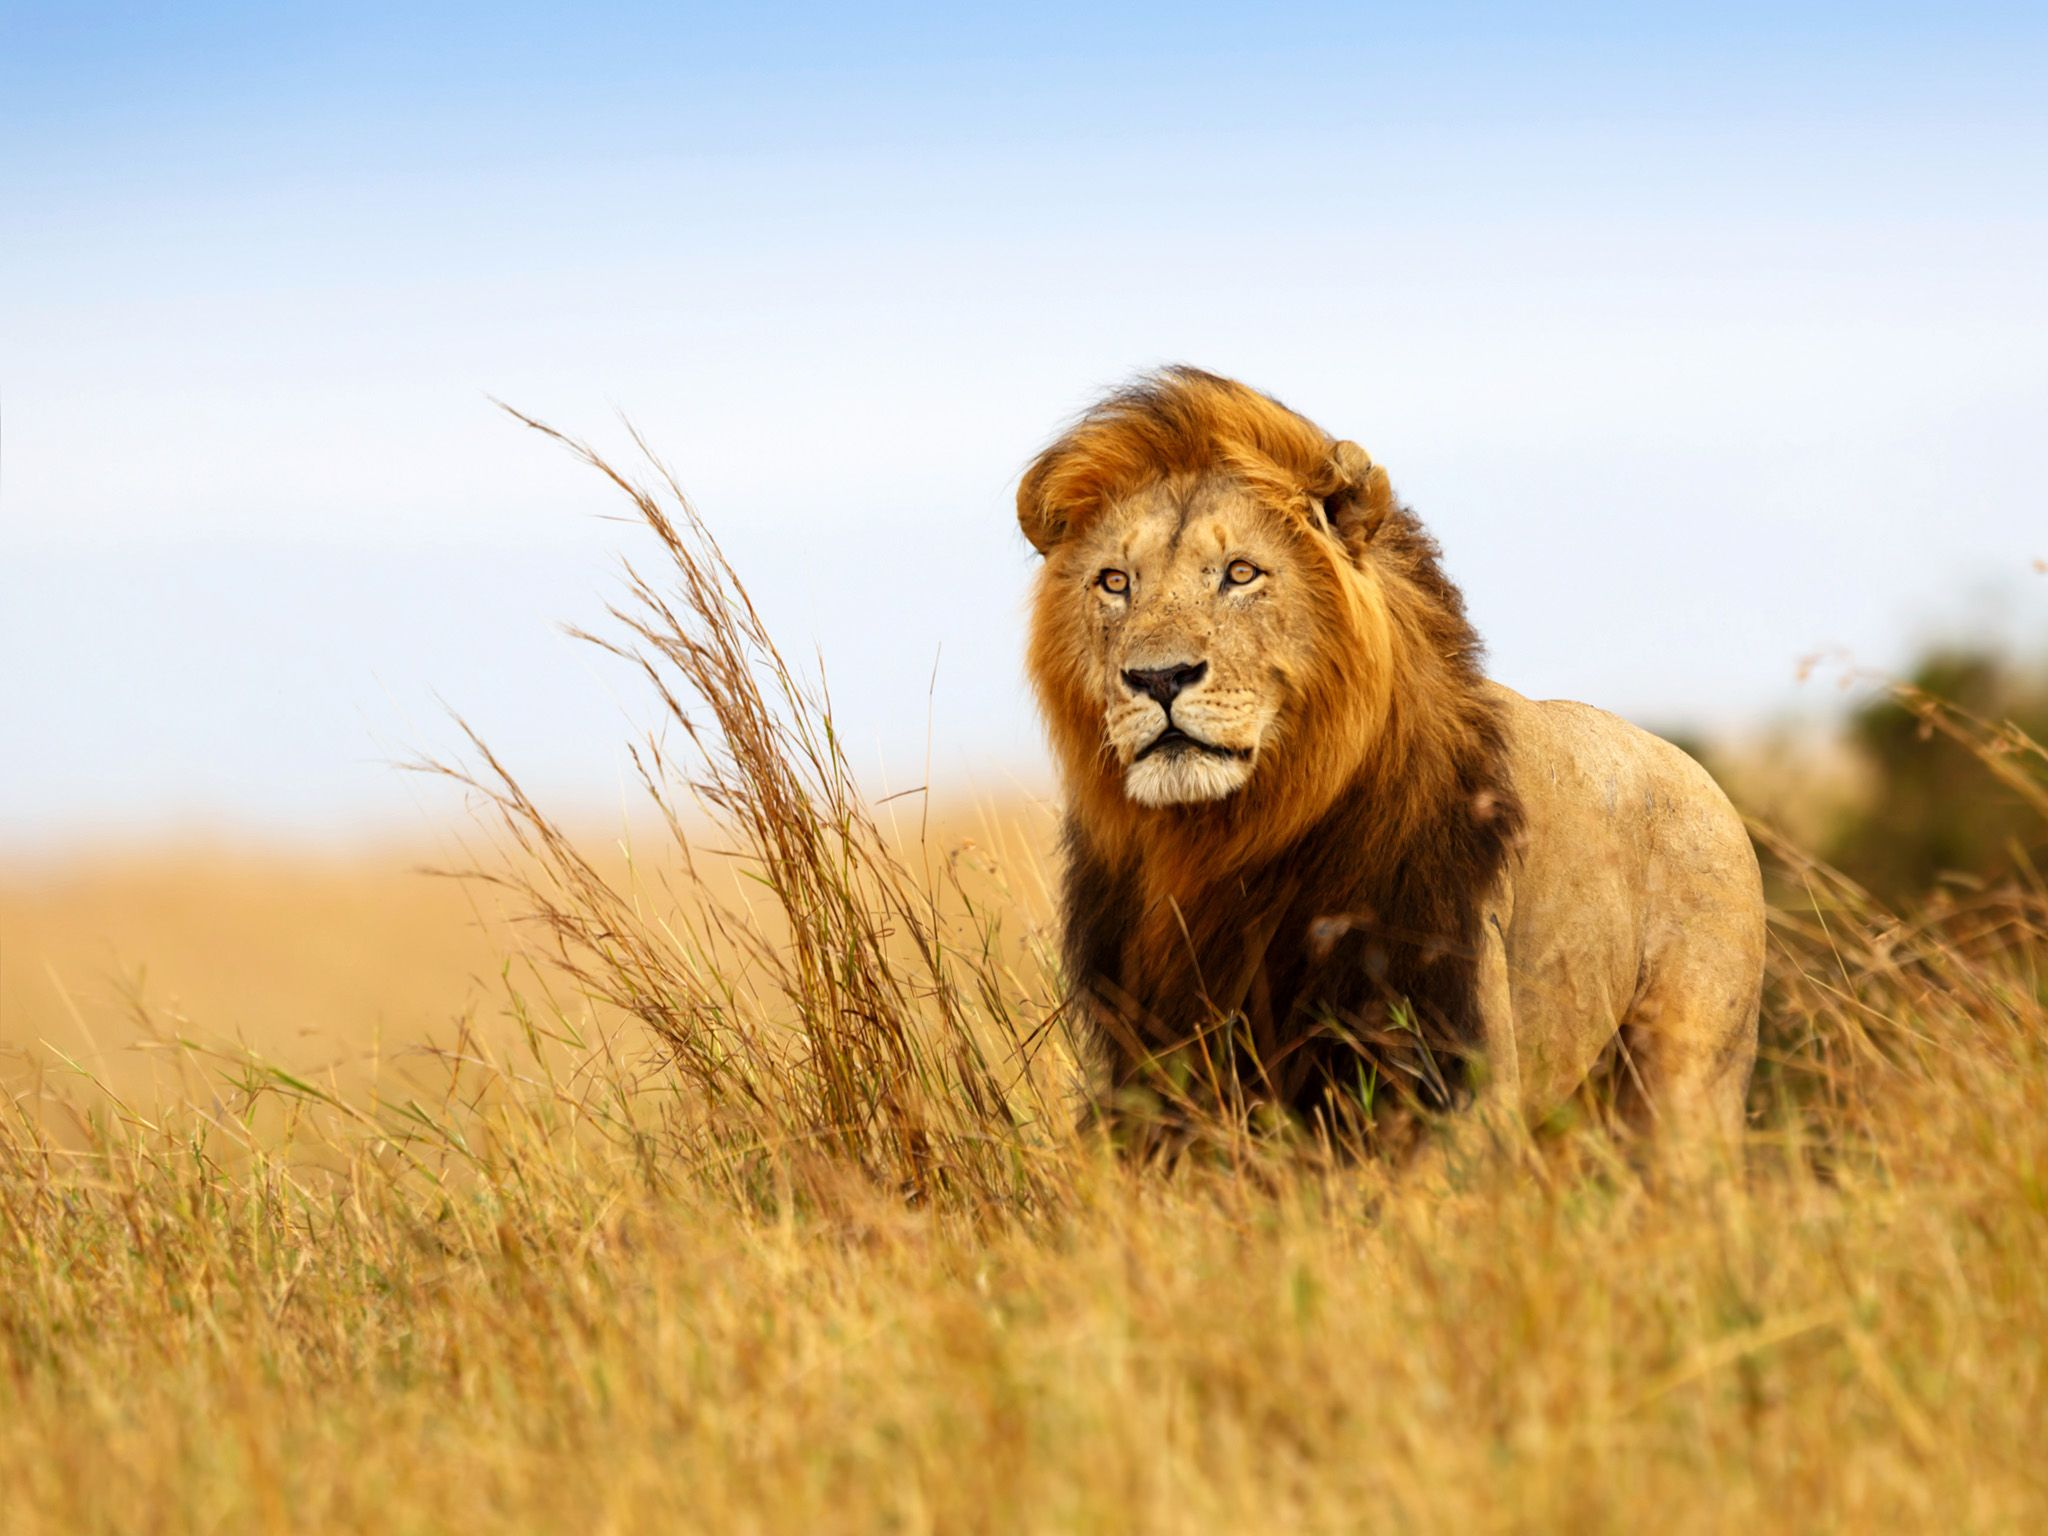 A majestic lion standing in a field. What will lions of the future be like?